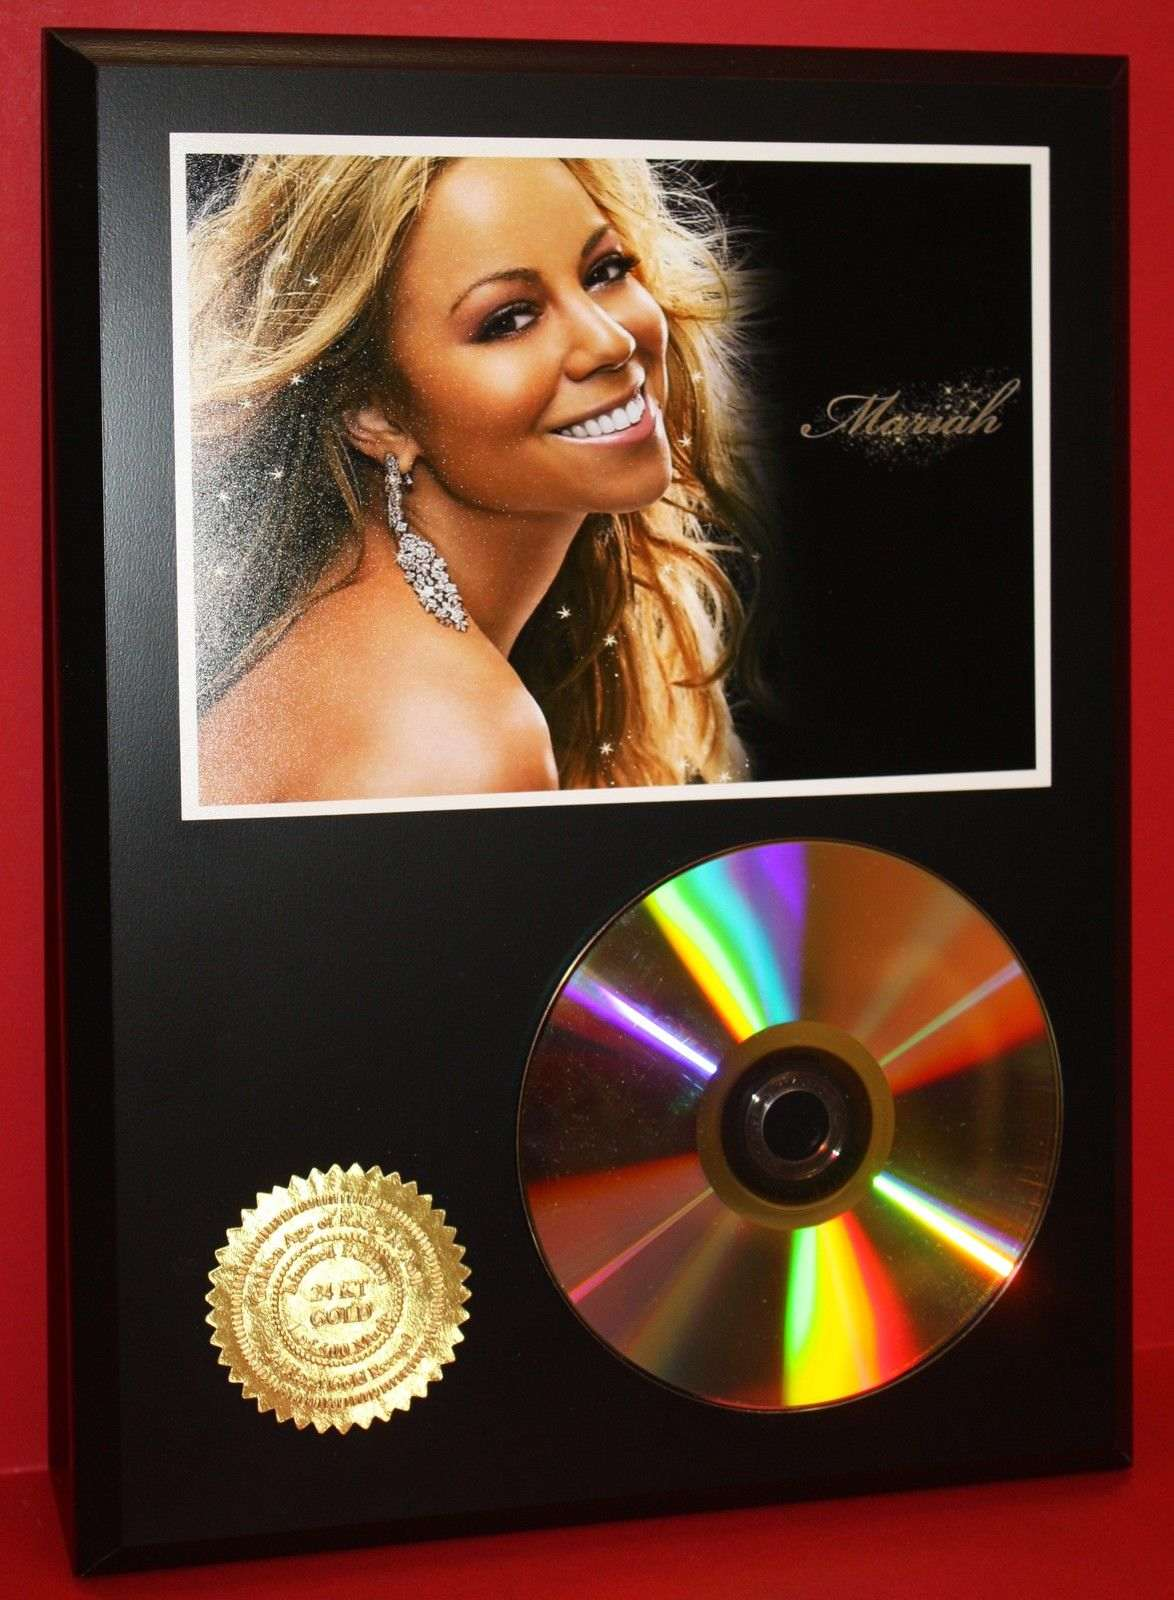 mariah carey 24kt gold cd disc collectible rare award quality plaque gift gold record awards. Black Bedroom Furniture Sets. Home Design Ideas